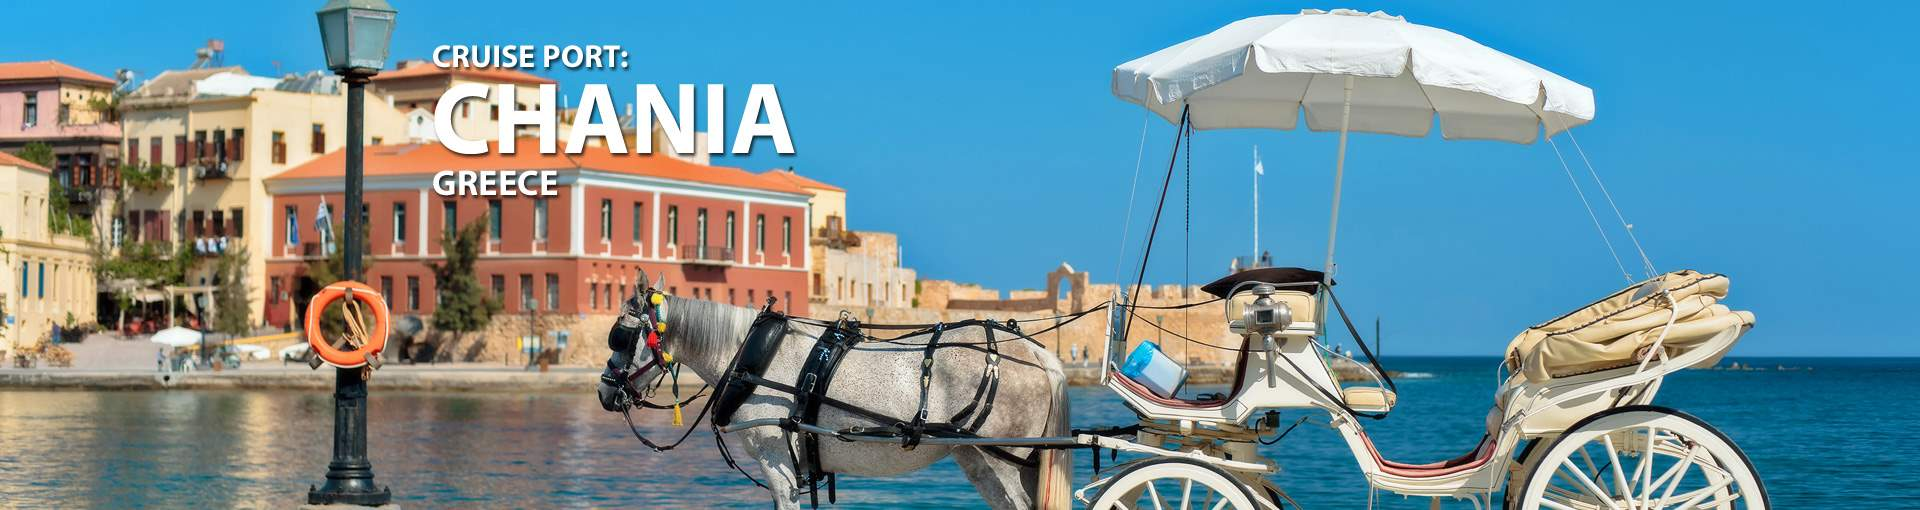 Cruises to Chania, Greece